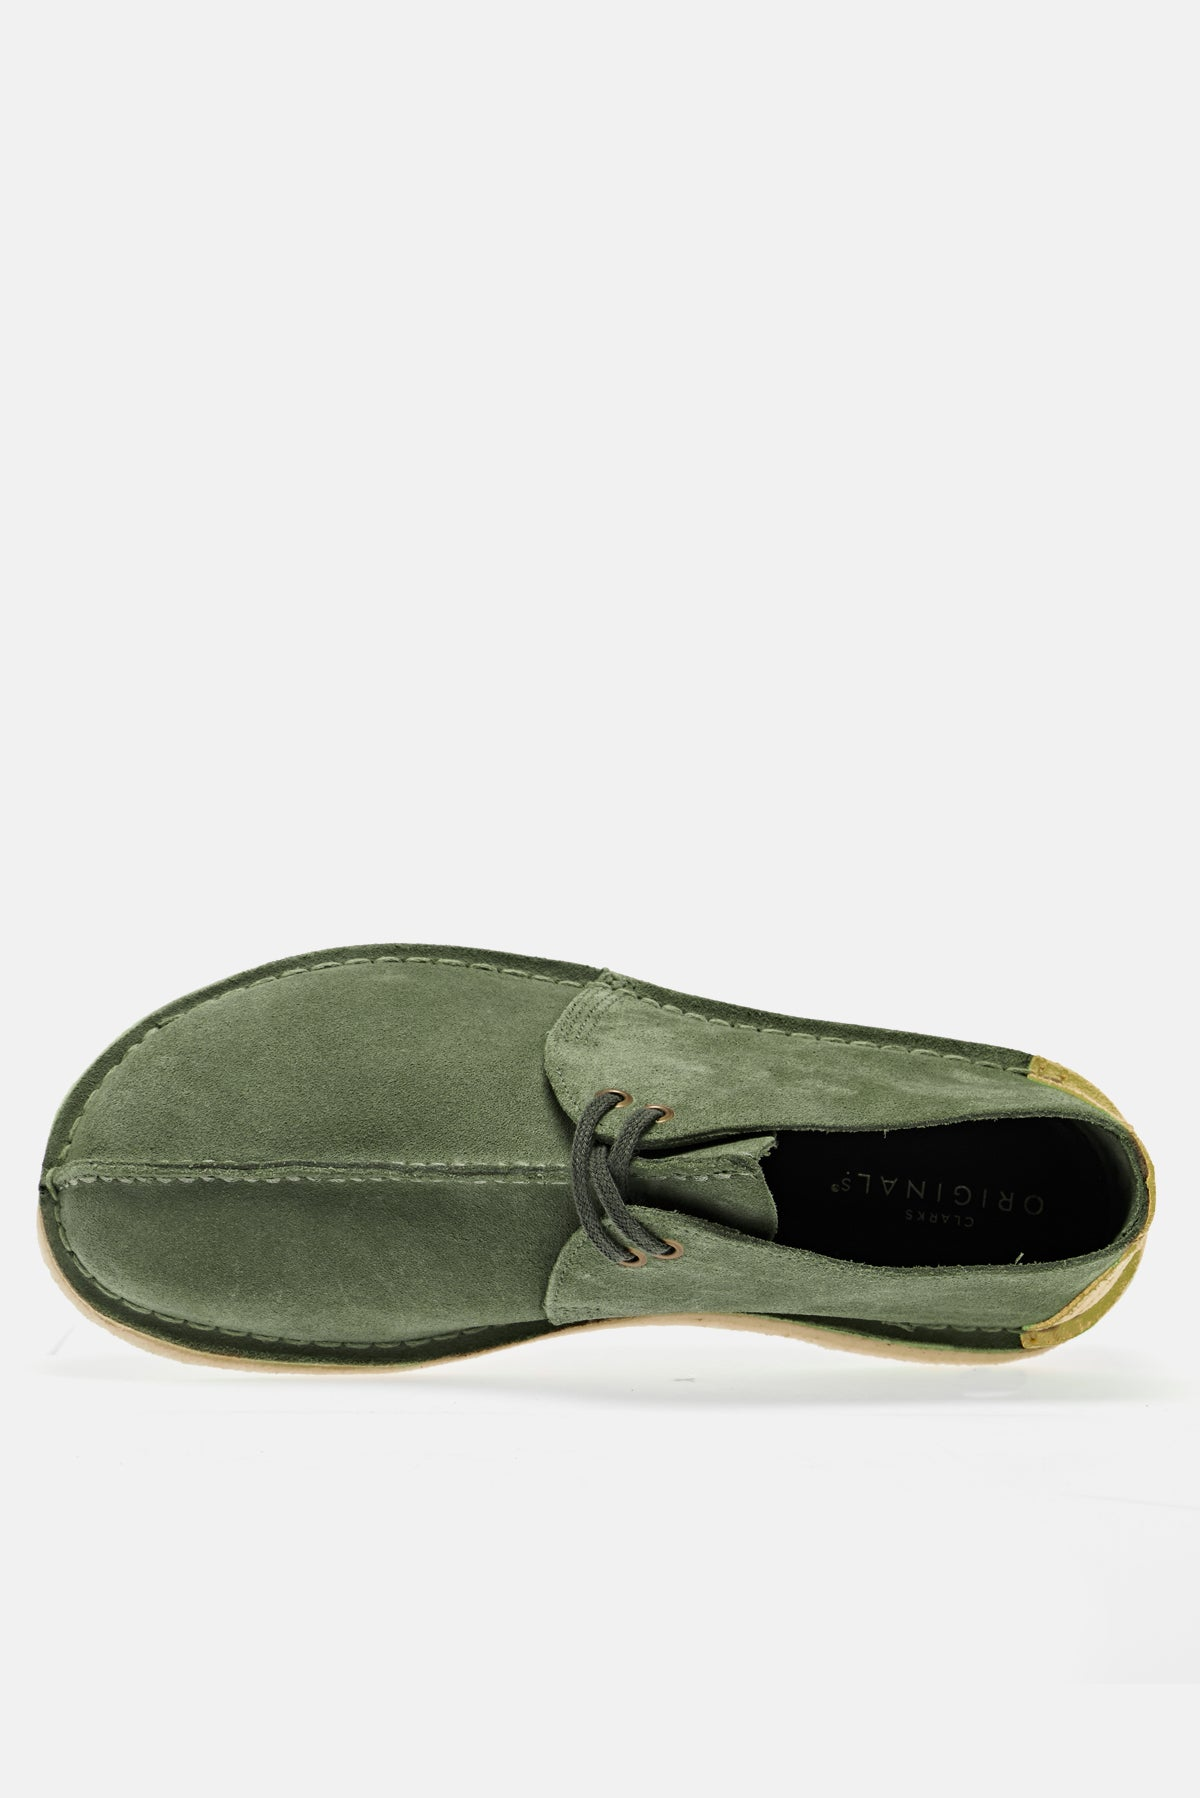 741e6ee5b Clarks Originals Desert Trek New Shoes available from Priory